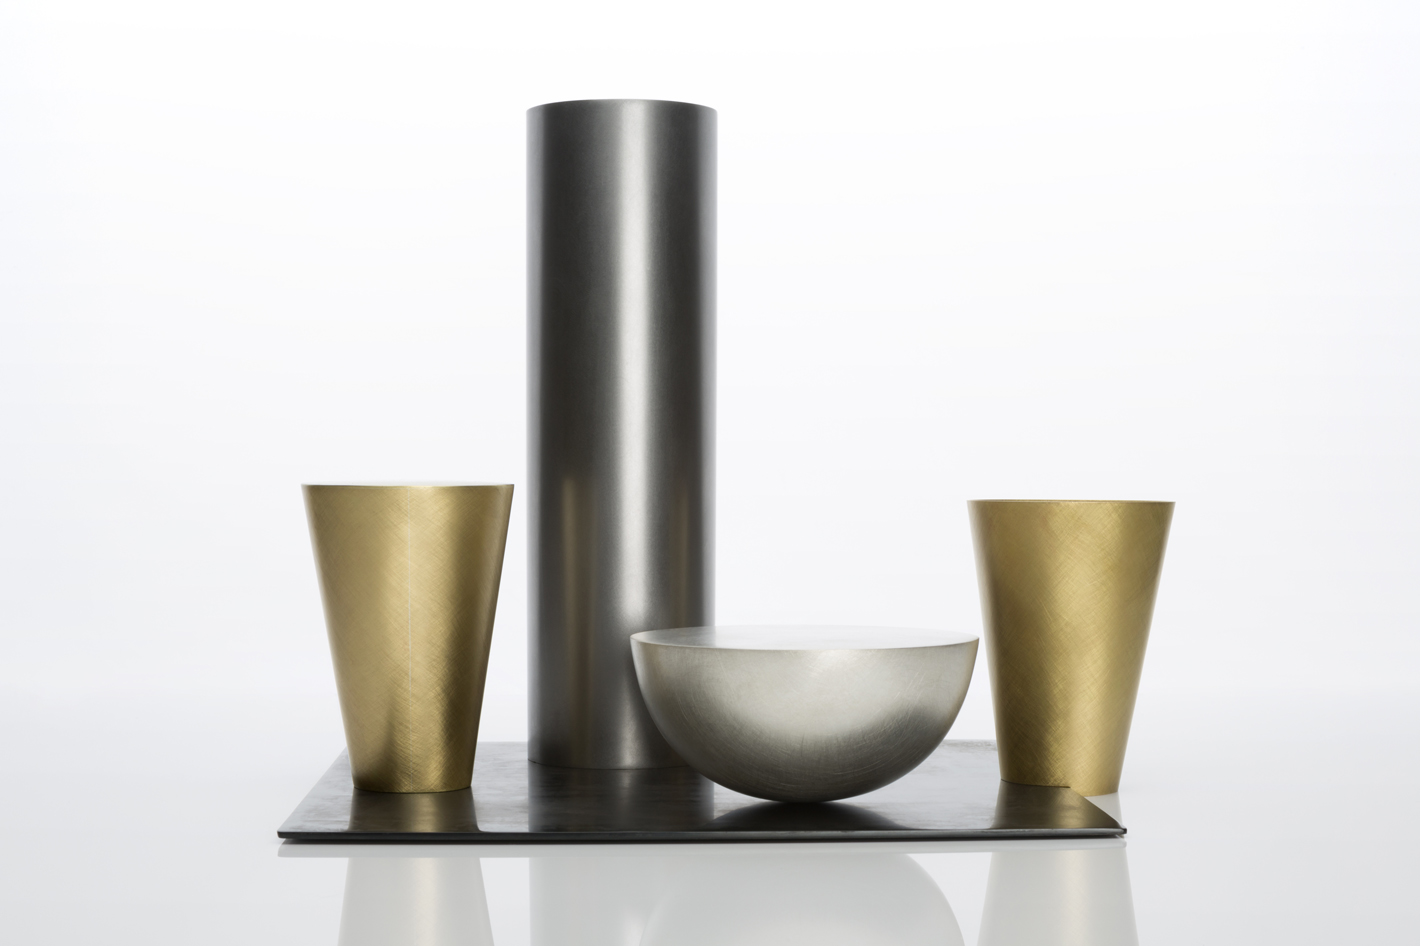 Juliette_Bigley_Bowl_with_Vessels_Mixed_Metals_2018_1.JPG